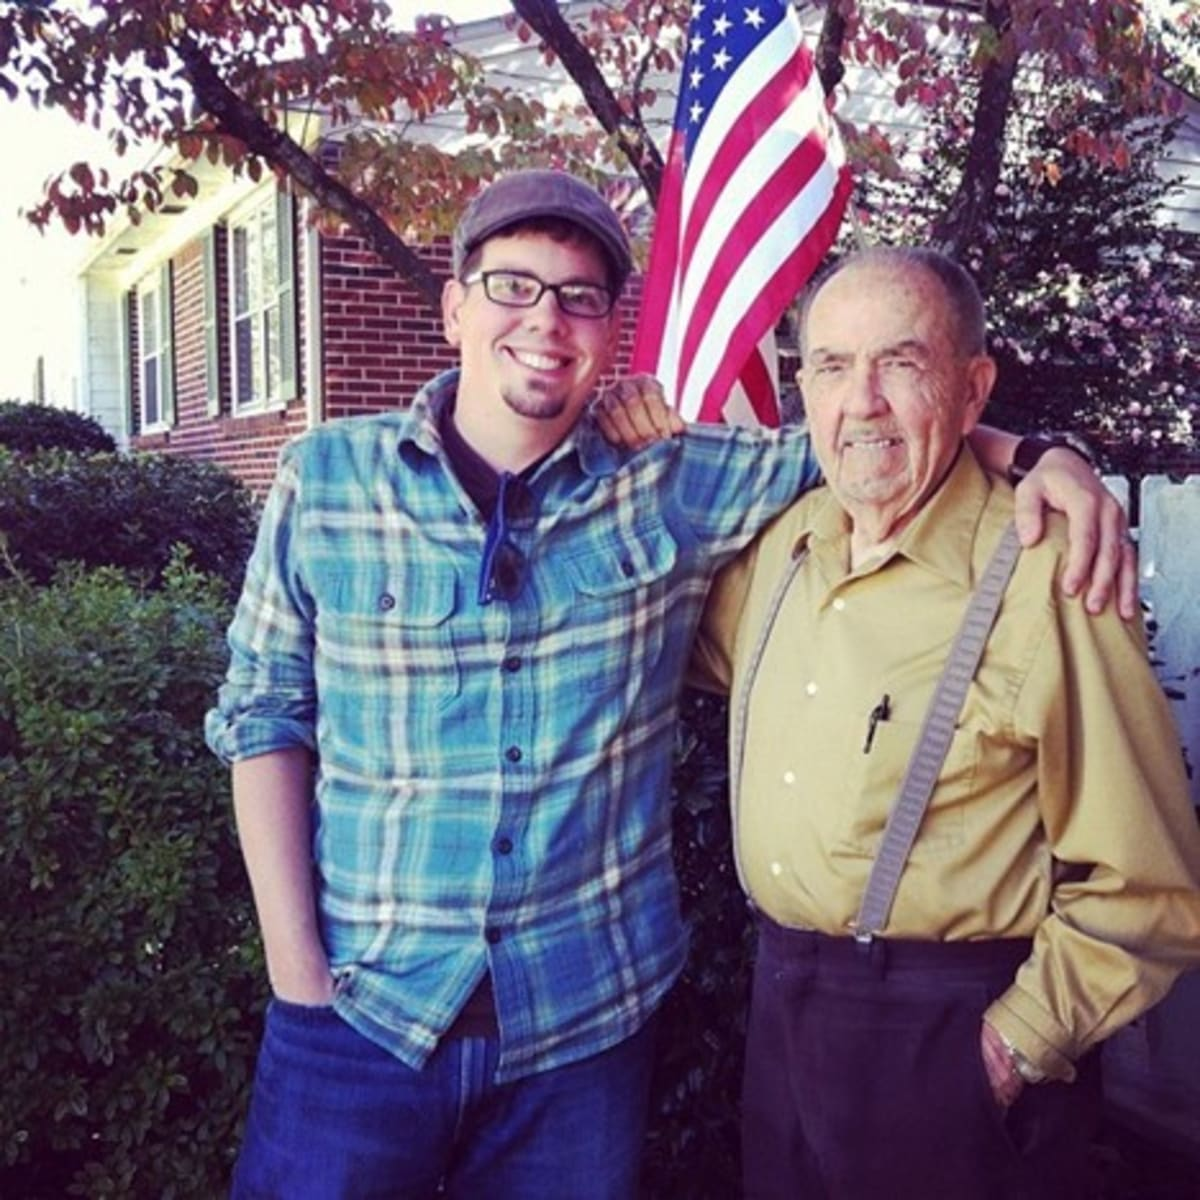 Eric Shoemaker (L) and his grandfather Frank R. Shoemaker Sr. (R).